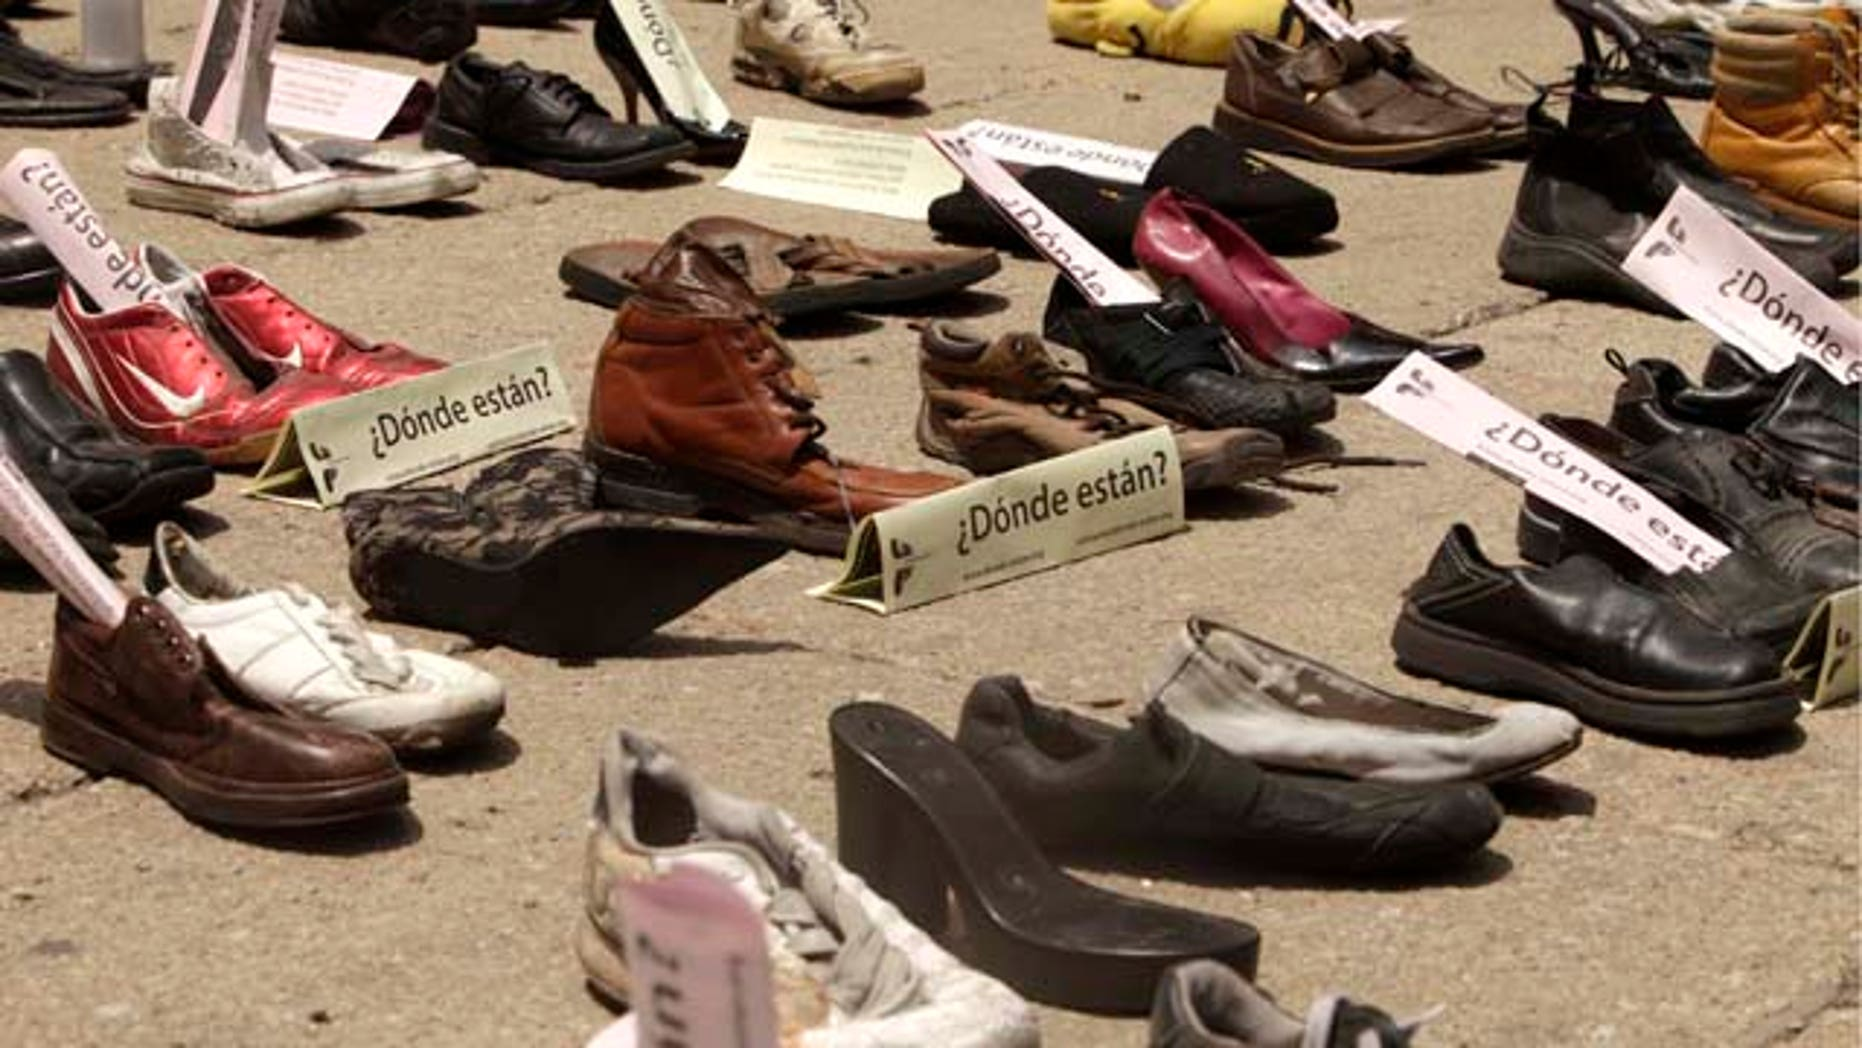 """Shoes with signs that read in Spanish: """"Where are them?"""" are displayed right outside the Senate building during a demonstration to protest against violence in Mexico City, Sunday Aug. 14, 2011. The continuing tide of drug-related killings in Mexico has drawn thousands of protesters to march against violence. (AP Photo/Arnulfo Franco)"""